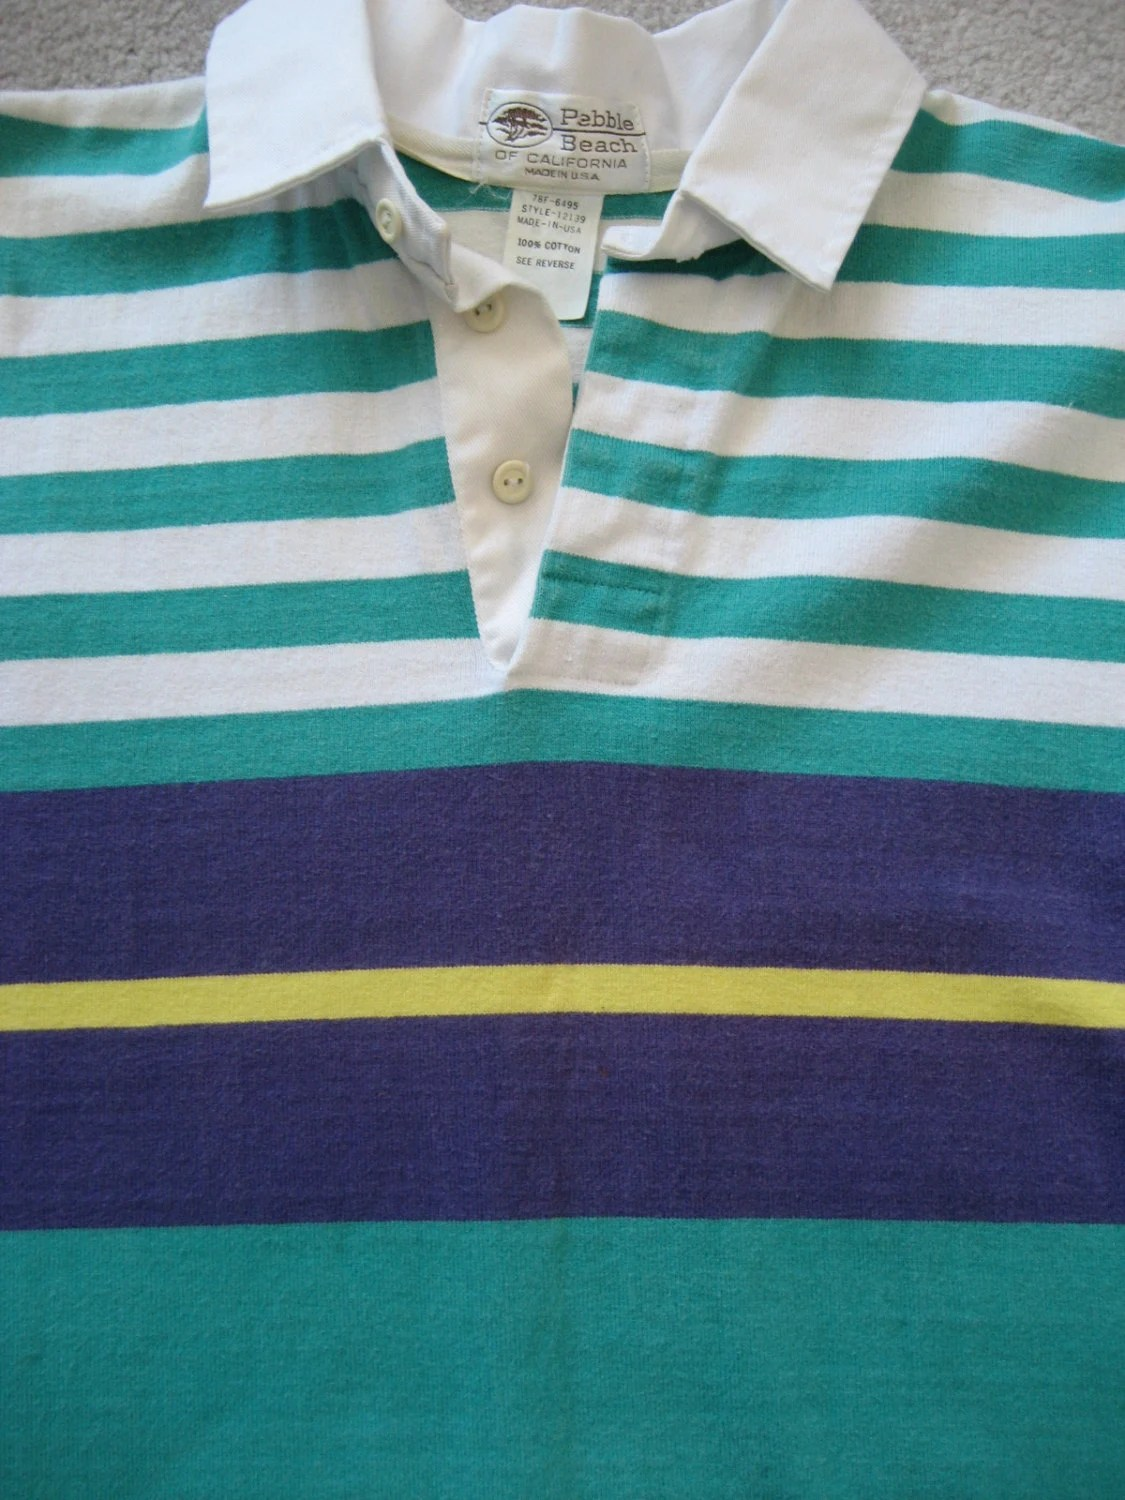 81524121 Purple Green And Gold Rugby Shirt - Rugs Ideas